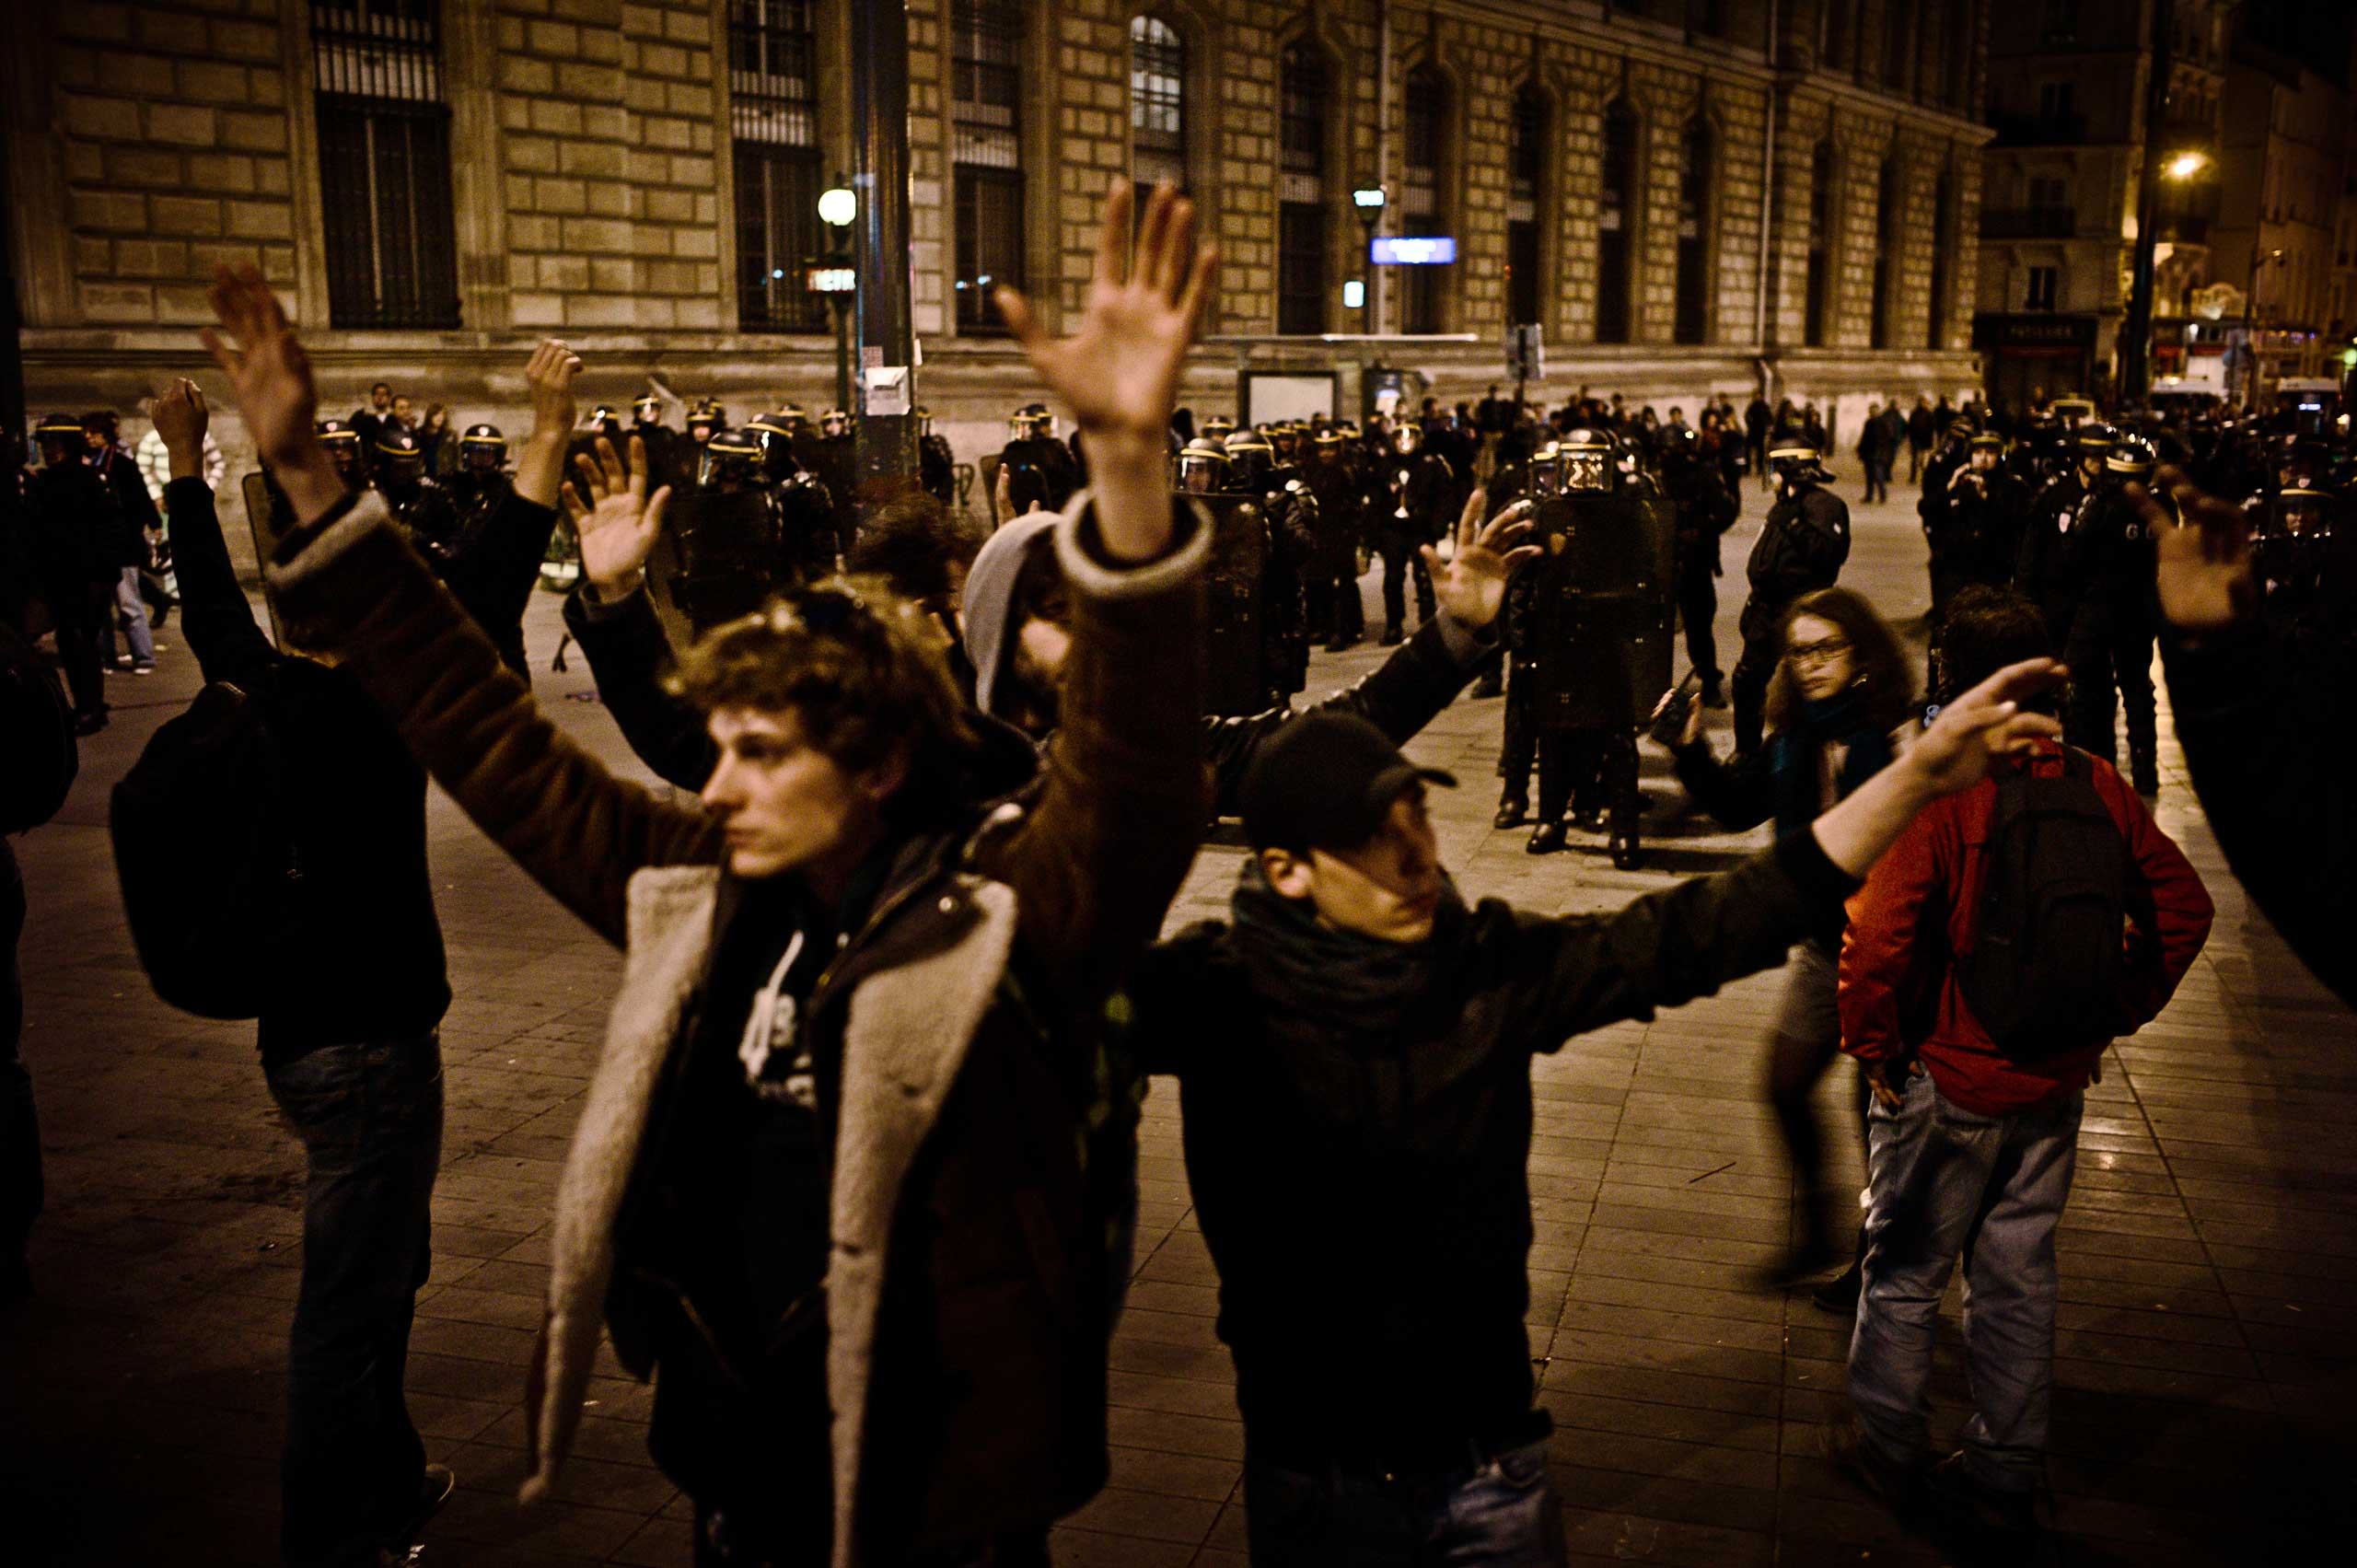 This evening ends earlier than expected due to riots. People from Nuit Debout stand between police and rioters, May 1, 2016.